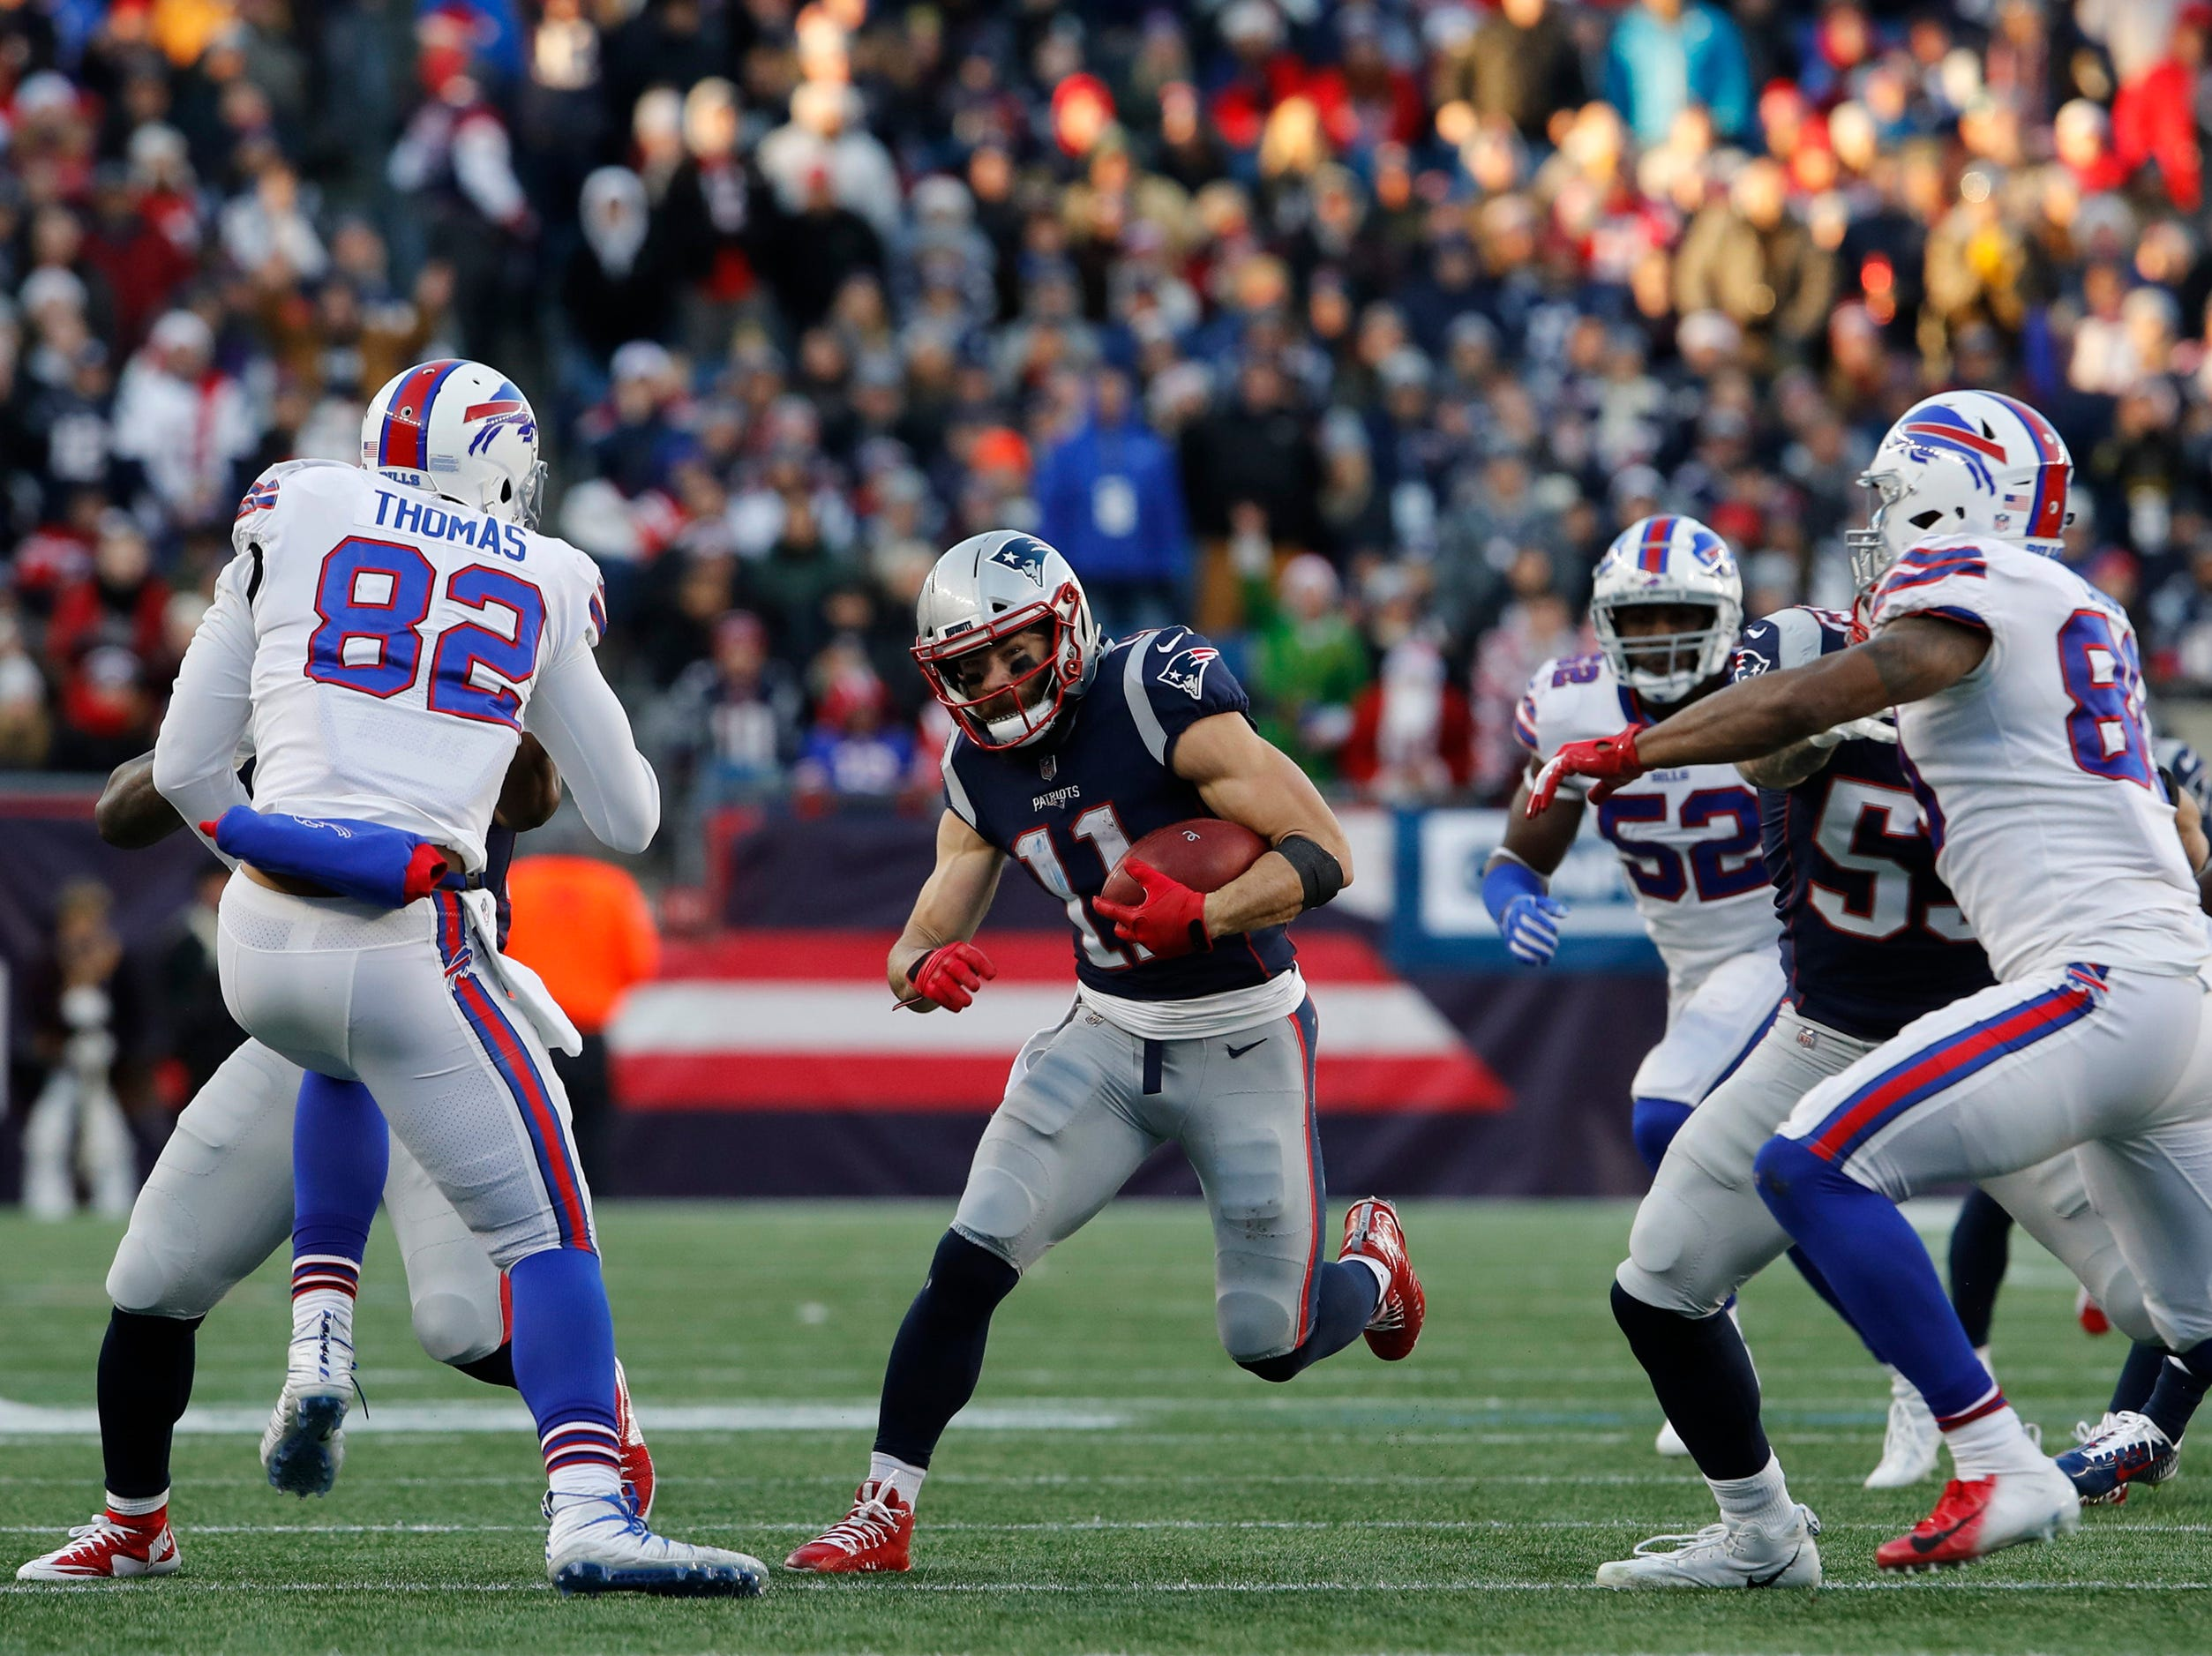 Dec 23, 2018; Foxborough, MA, USA; New England Patriots wide receiver Julian Edelman (11) runs the ball against the Buffalo Bills in the second half at Gillette Stadium. Patriots defeated the Bills 24-12. Mandatory Credit: David Butler II-USA TODAY Sports